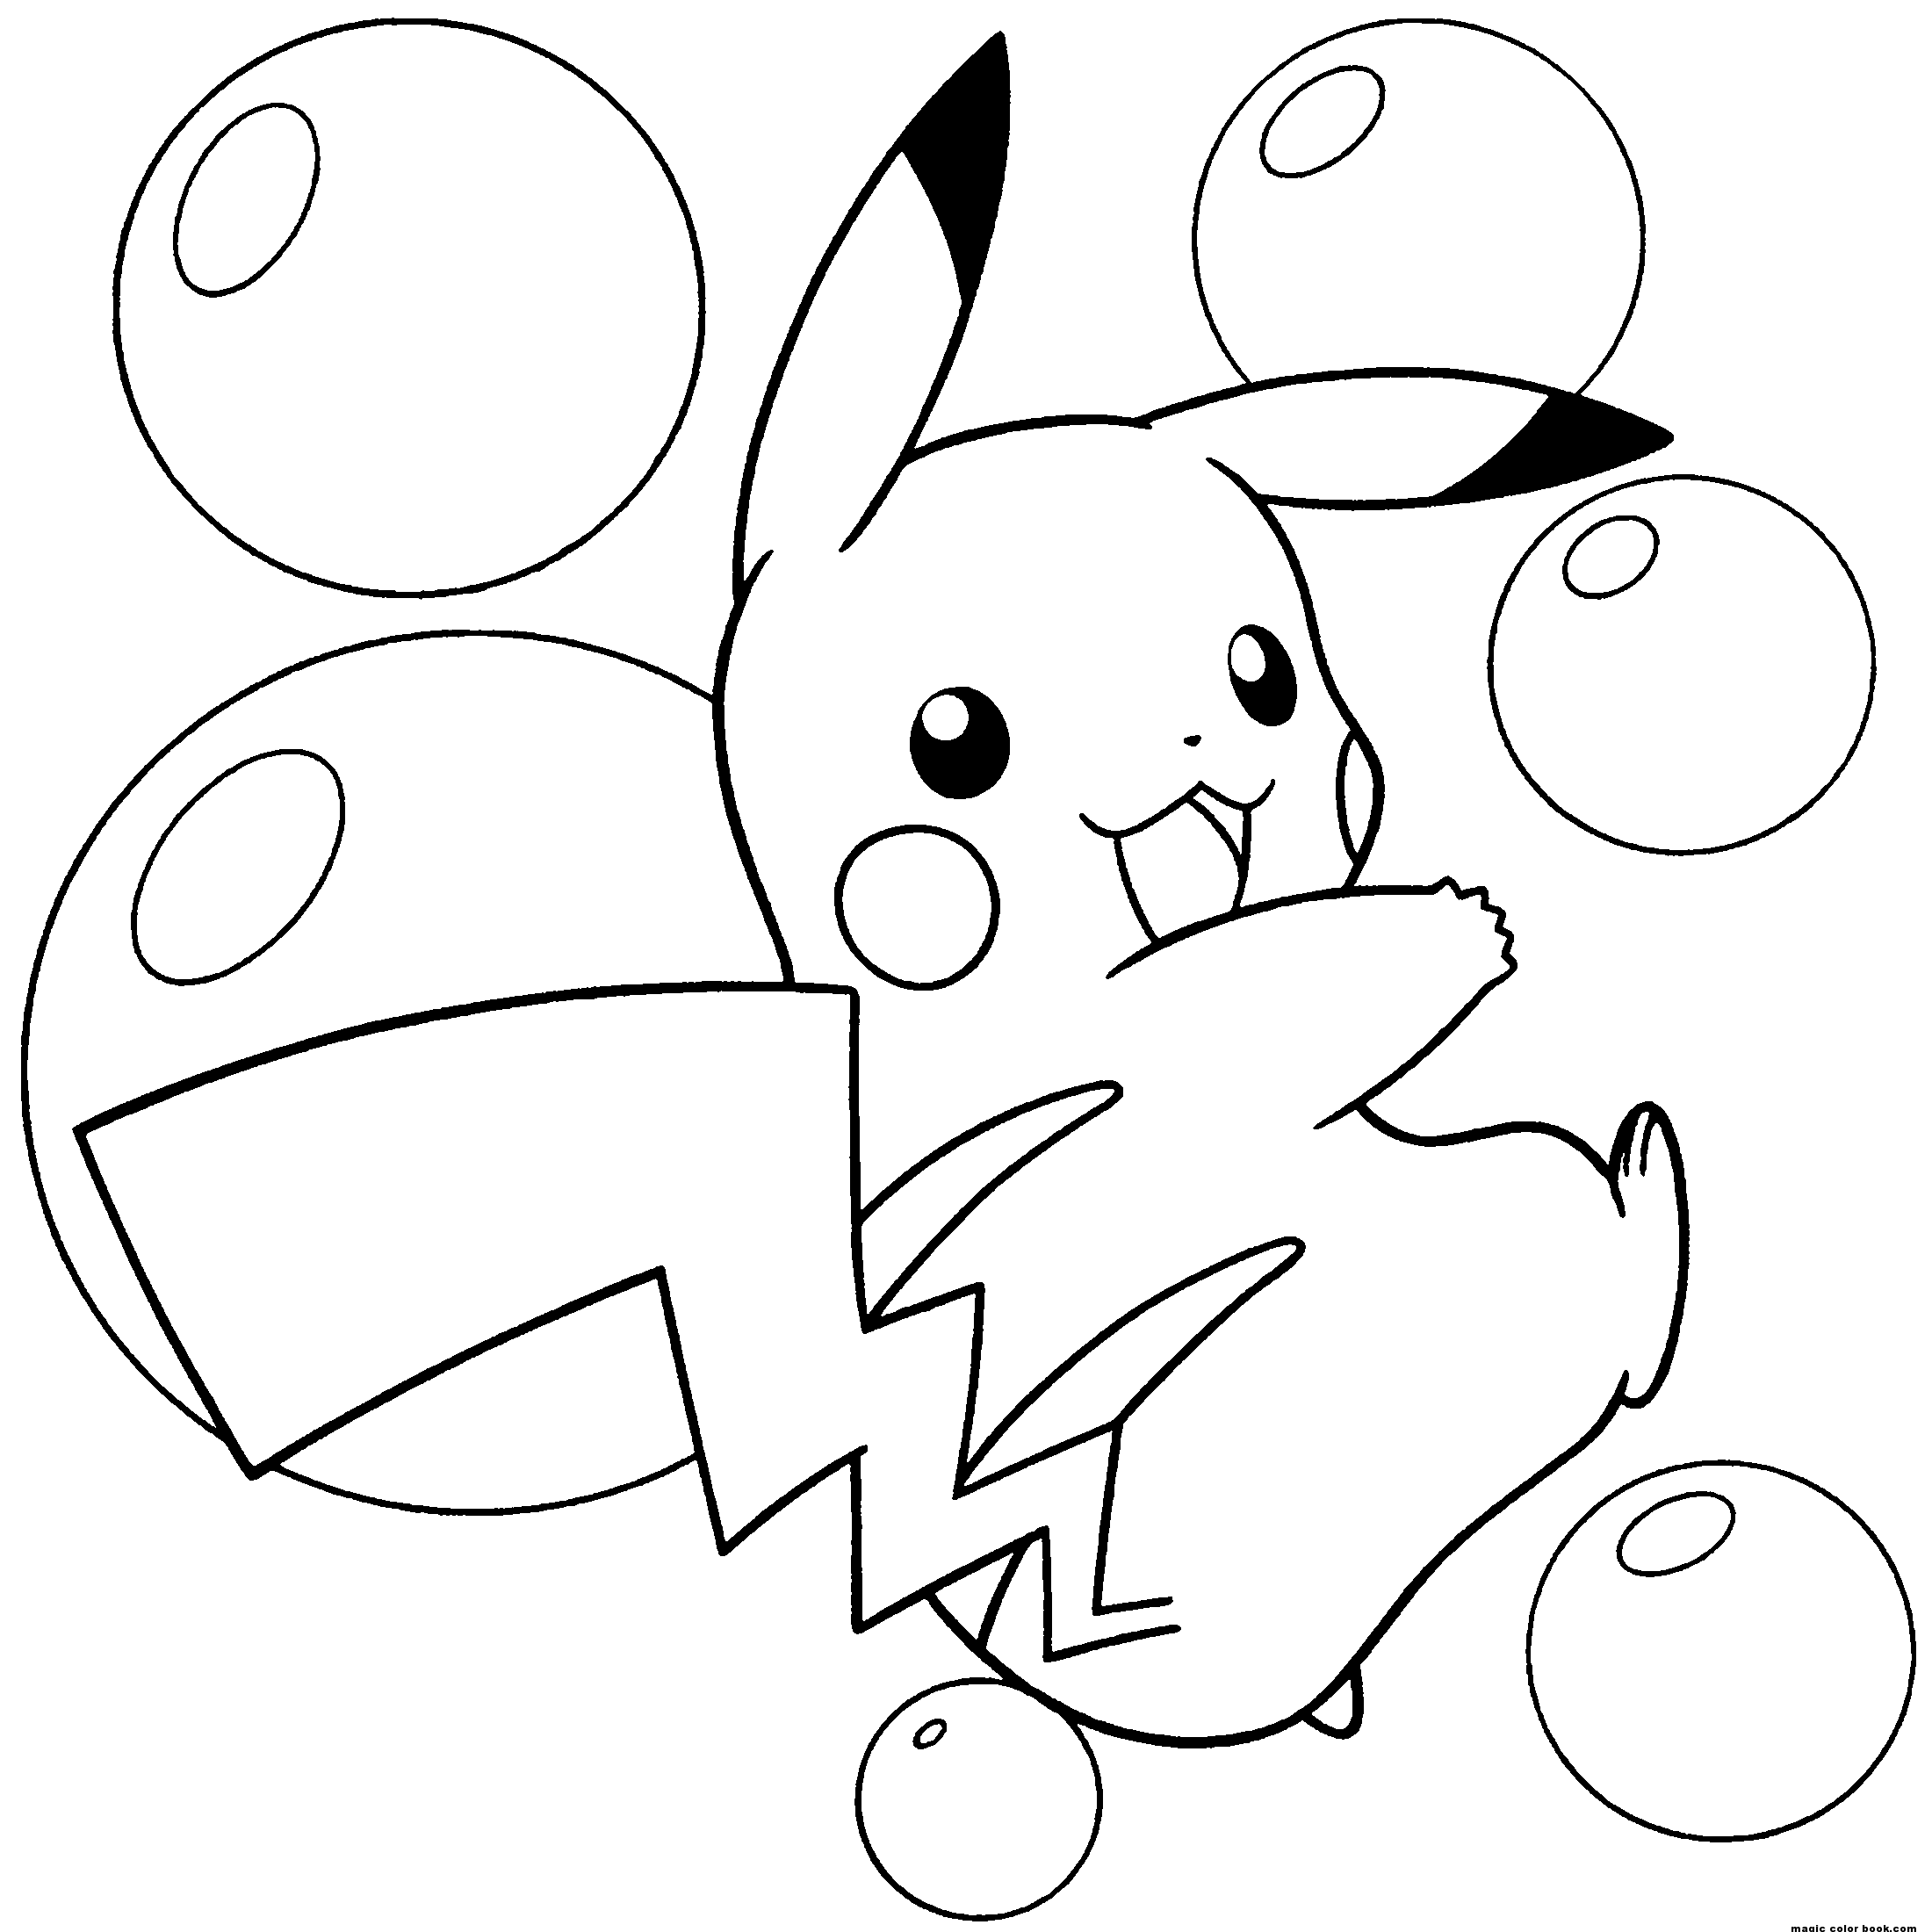 pokemon coloring - Colouring Games Online Free